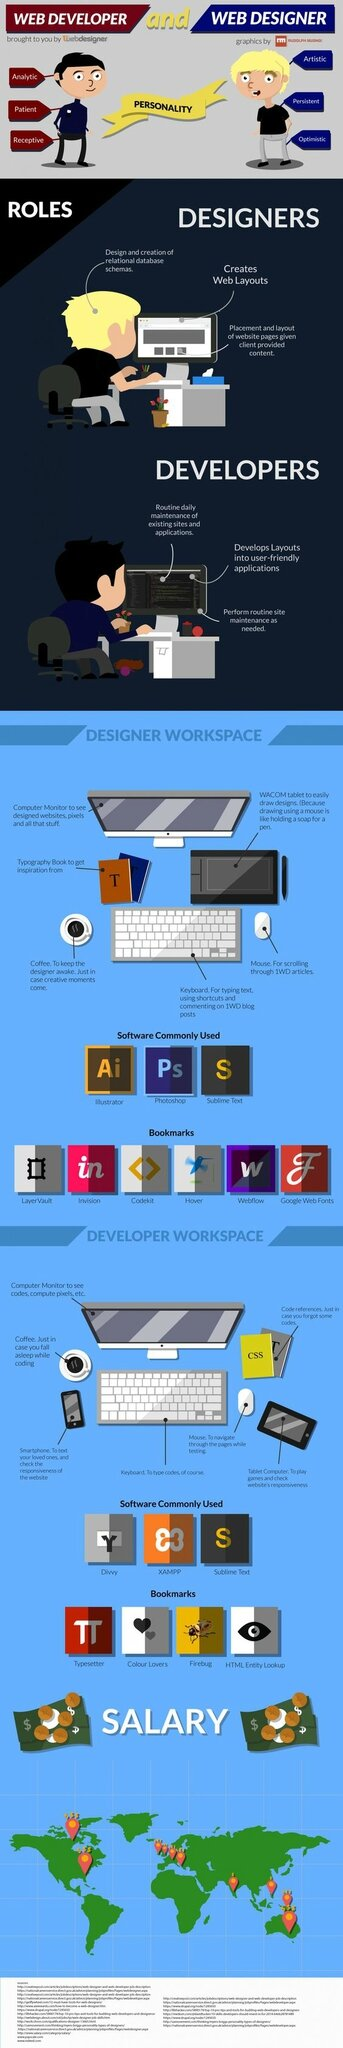 web developpers vs web designer